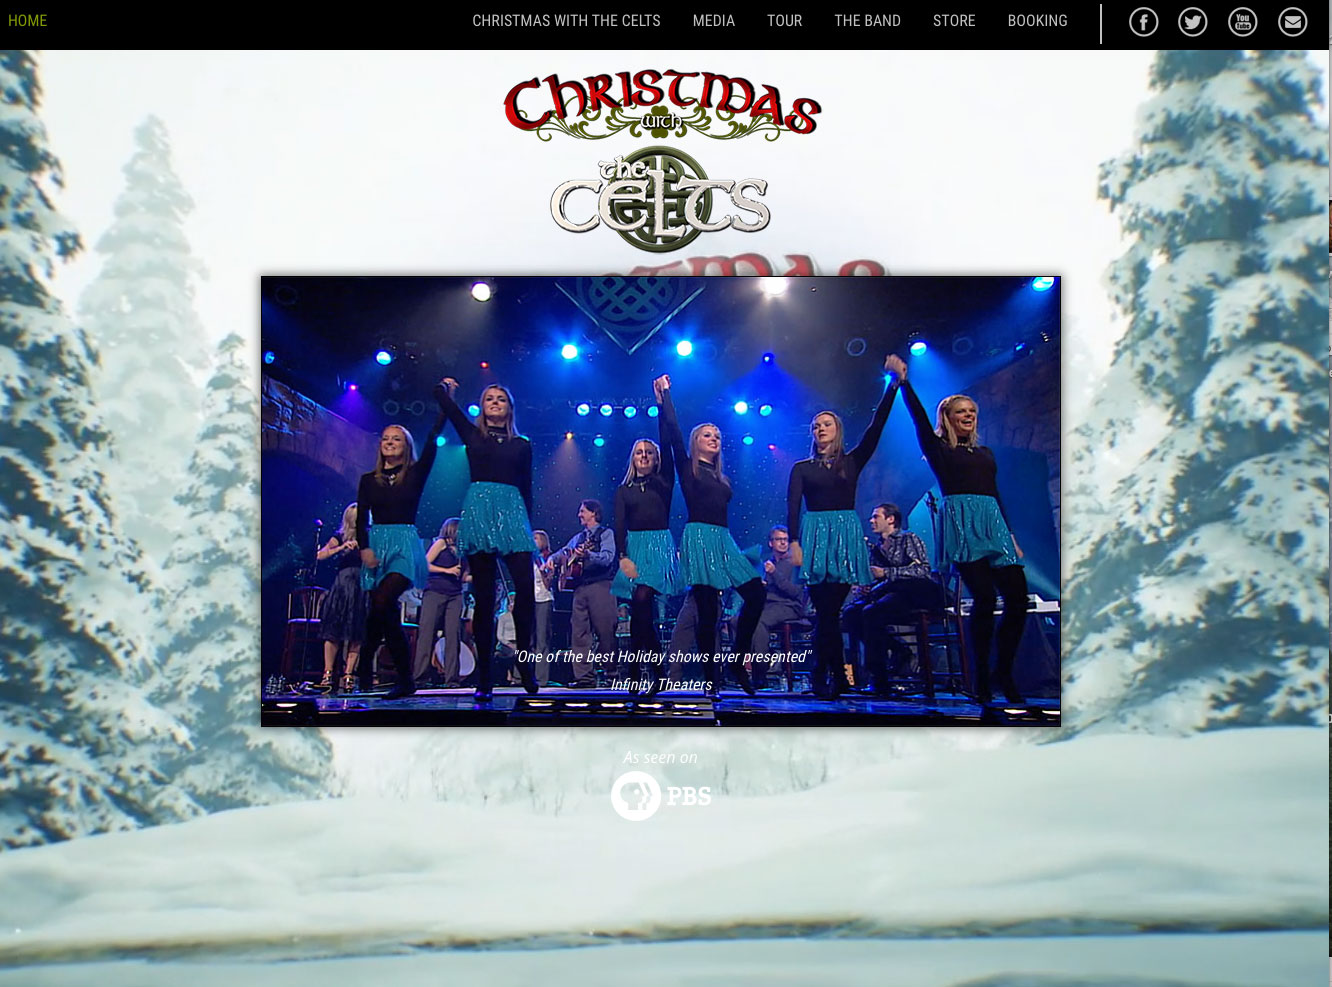 new website update for christmas with the celts - Christmas With The Celts